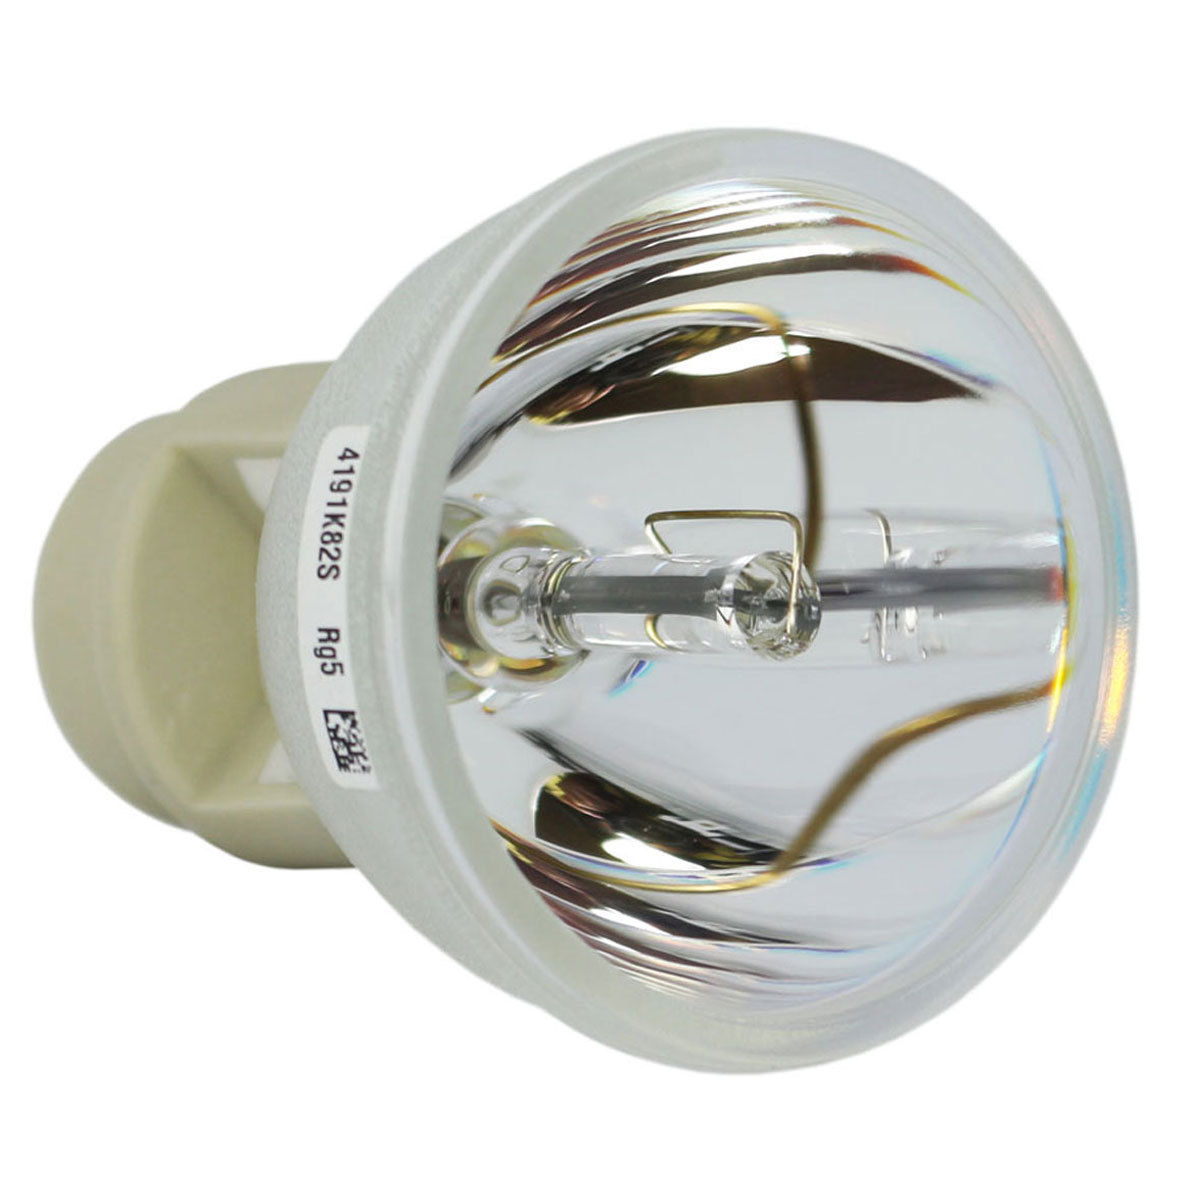 Compatible Bare Bulb NP36LP NP-36LP 100014091 for NEC NP-V302W NP-V302X V302W V302X Projector Lamp Bulb without housing монитор nec 30 multisync pa302w sv2 pa302w sv2